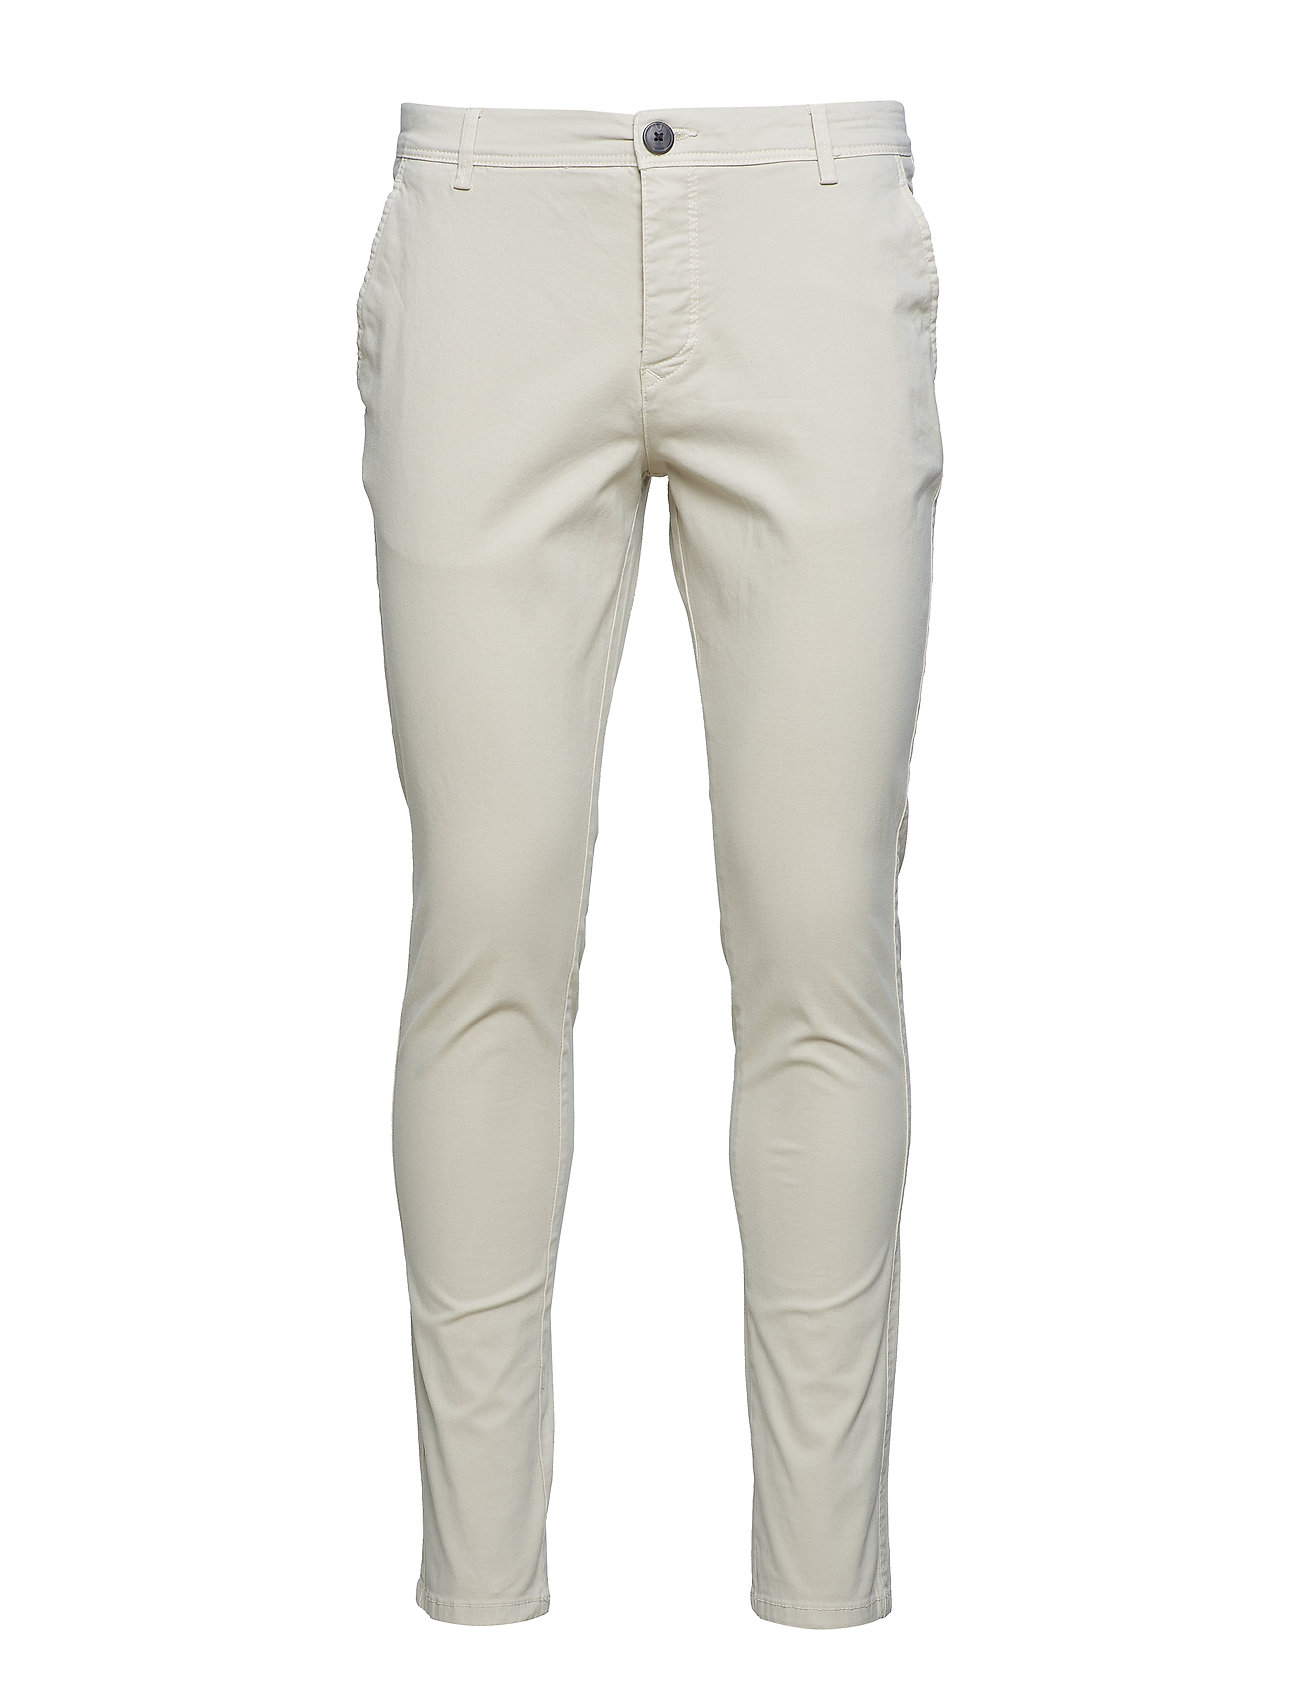 Selected Homme SLHSKINNY LUCA silver LIN. PANTS W NOOS Jeans